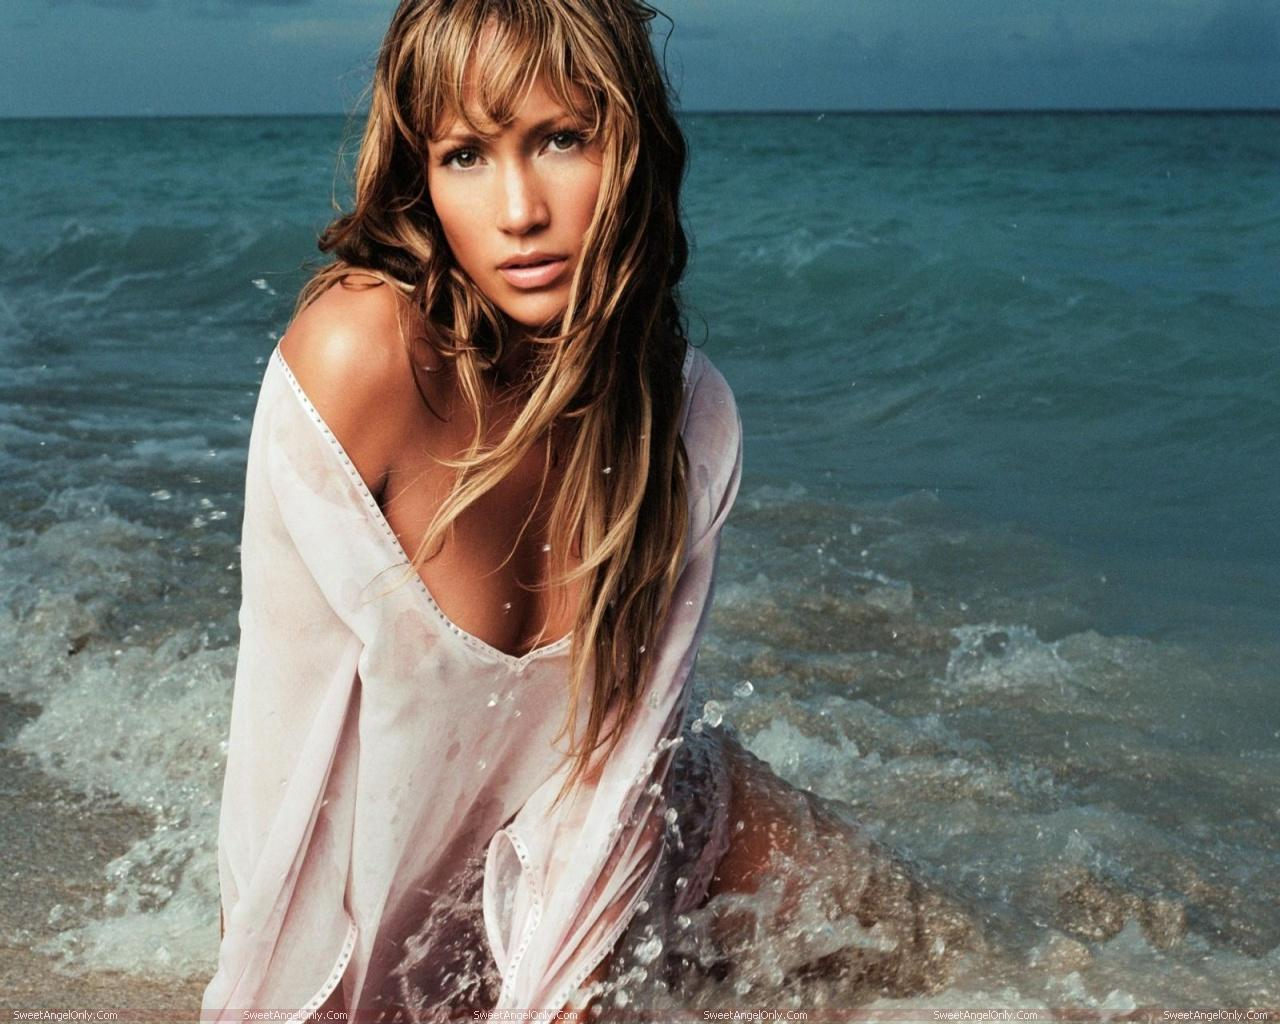 http://3.bp.blogspot.com/-Ofy6j705SY8/TWjm1RDzjsI/AAAAAAAAE0c/s1ftIjcyE3U/s1600/actress_jennifer_lopez_hot_wallpapers_02.jpg